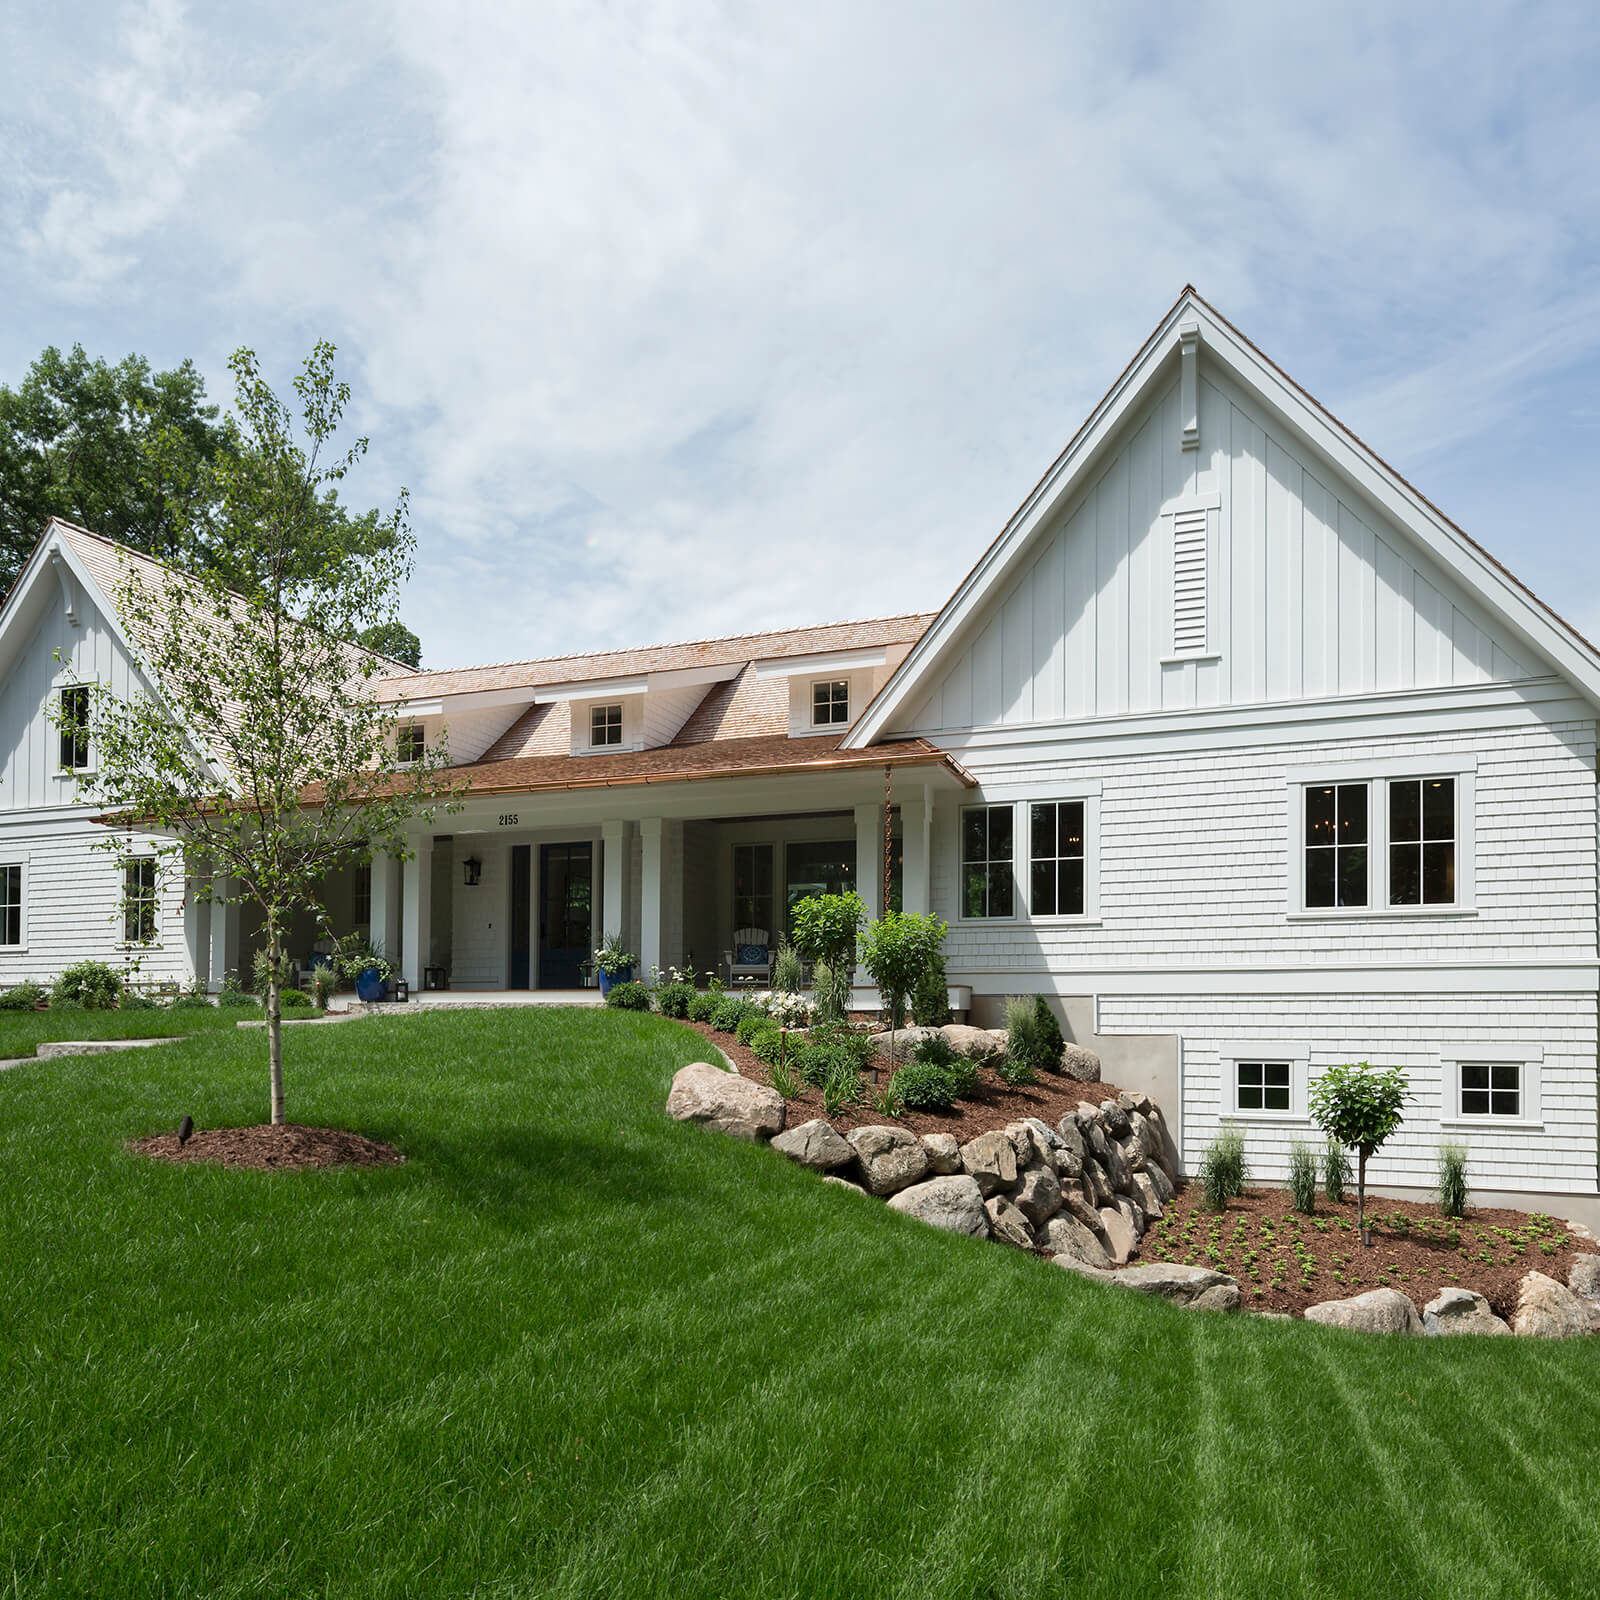 Three Reasons Why You Should Maintain Your Home's Exterior